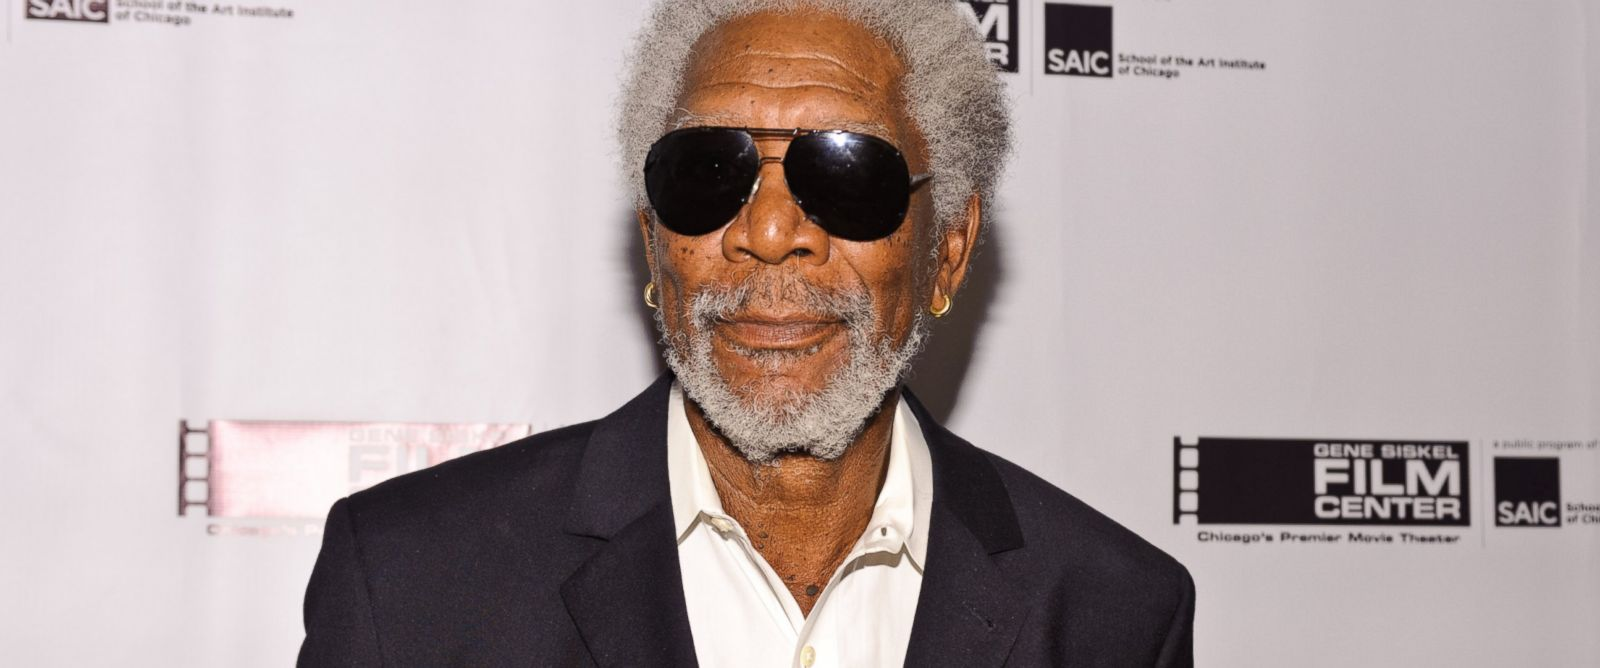 PHOTO: Morgan Freeman is honored by the Gene Siskel Film Center at the Ritz Carlton on June 7, 2014 in Chicago.